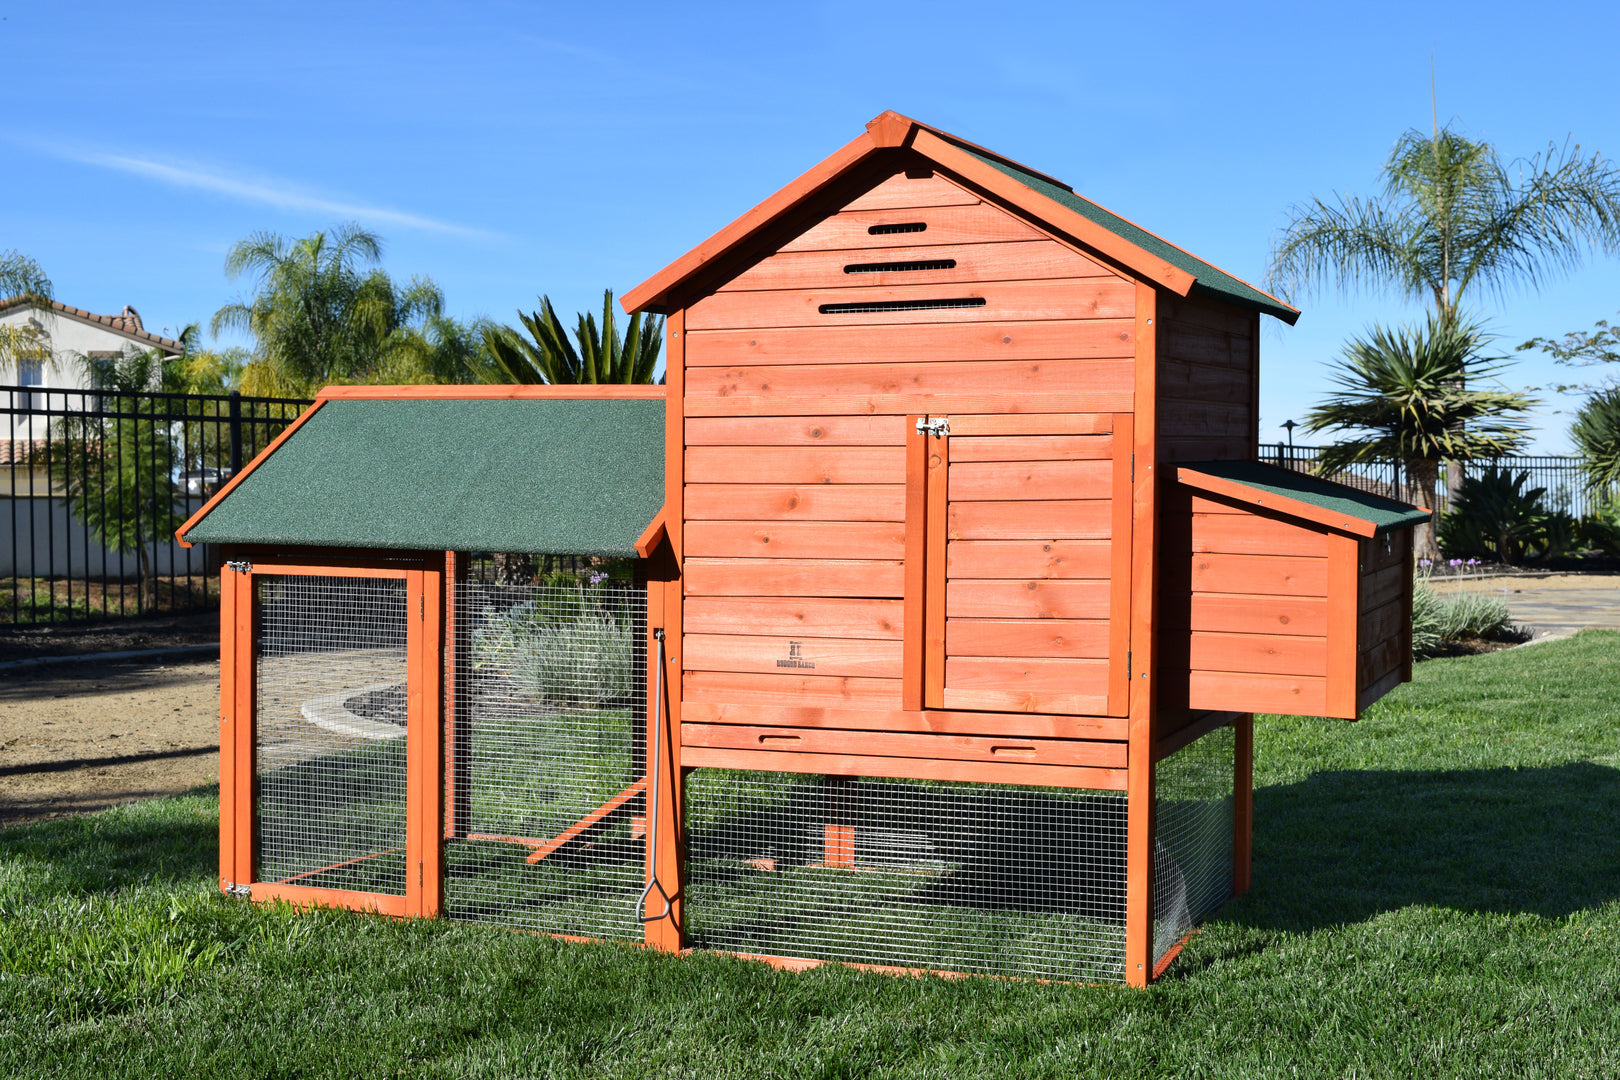 Rugged Ranch™ Raised Wood Chicken Coop